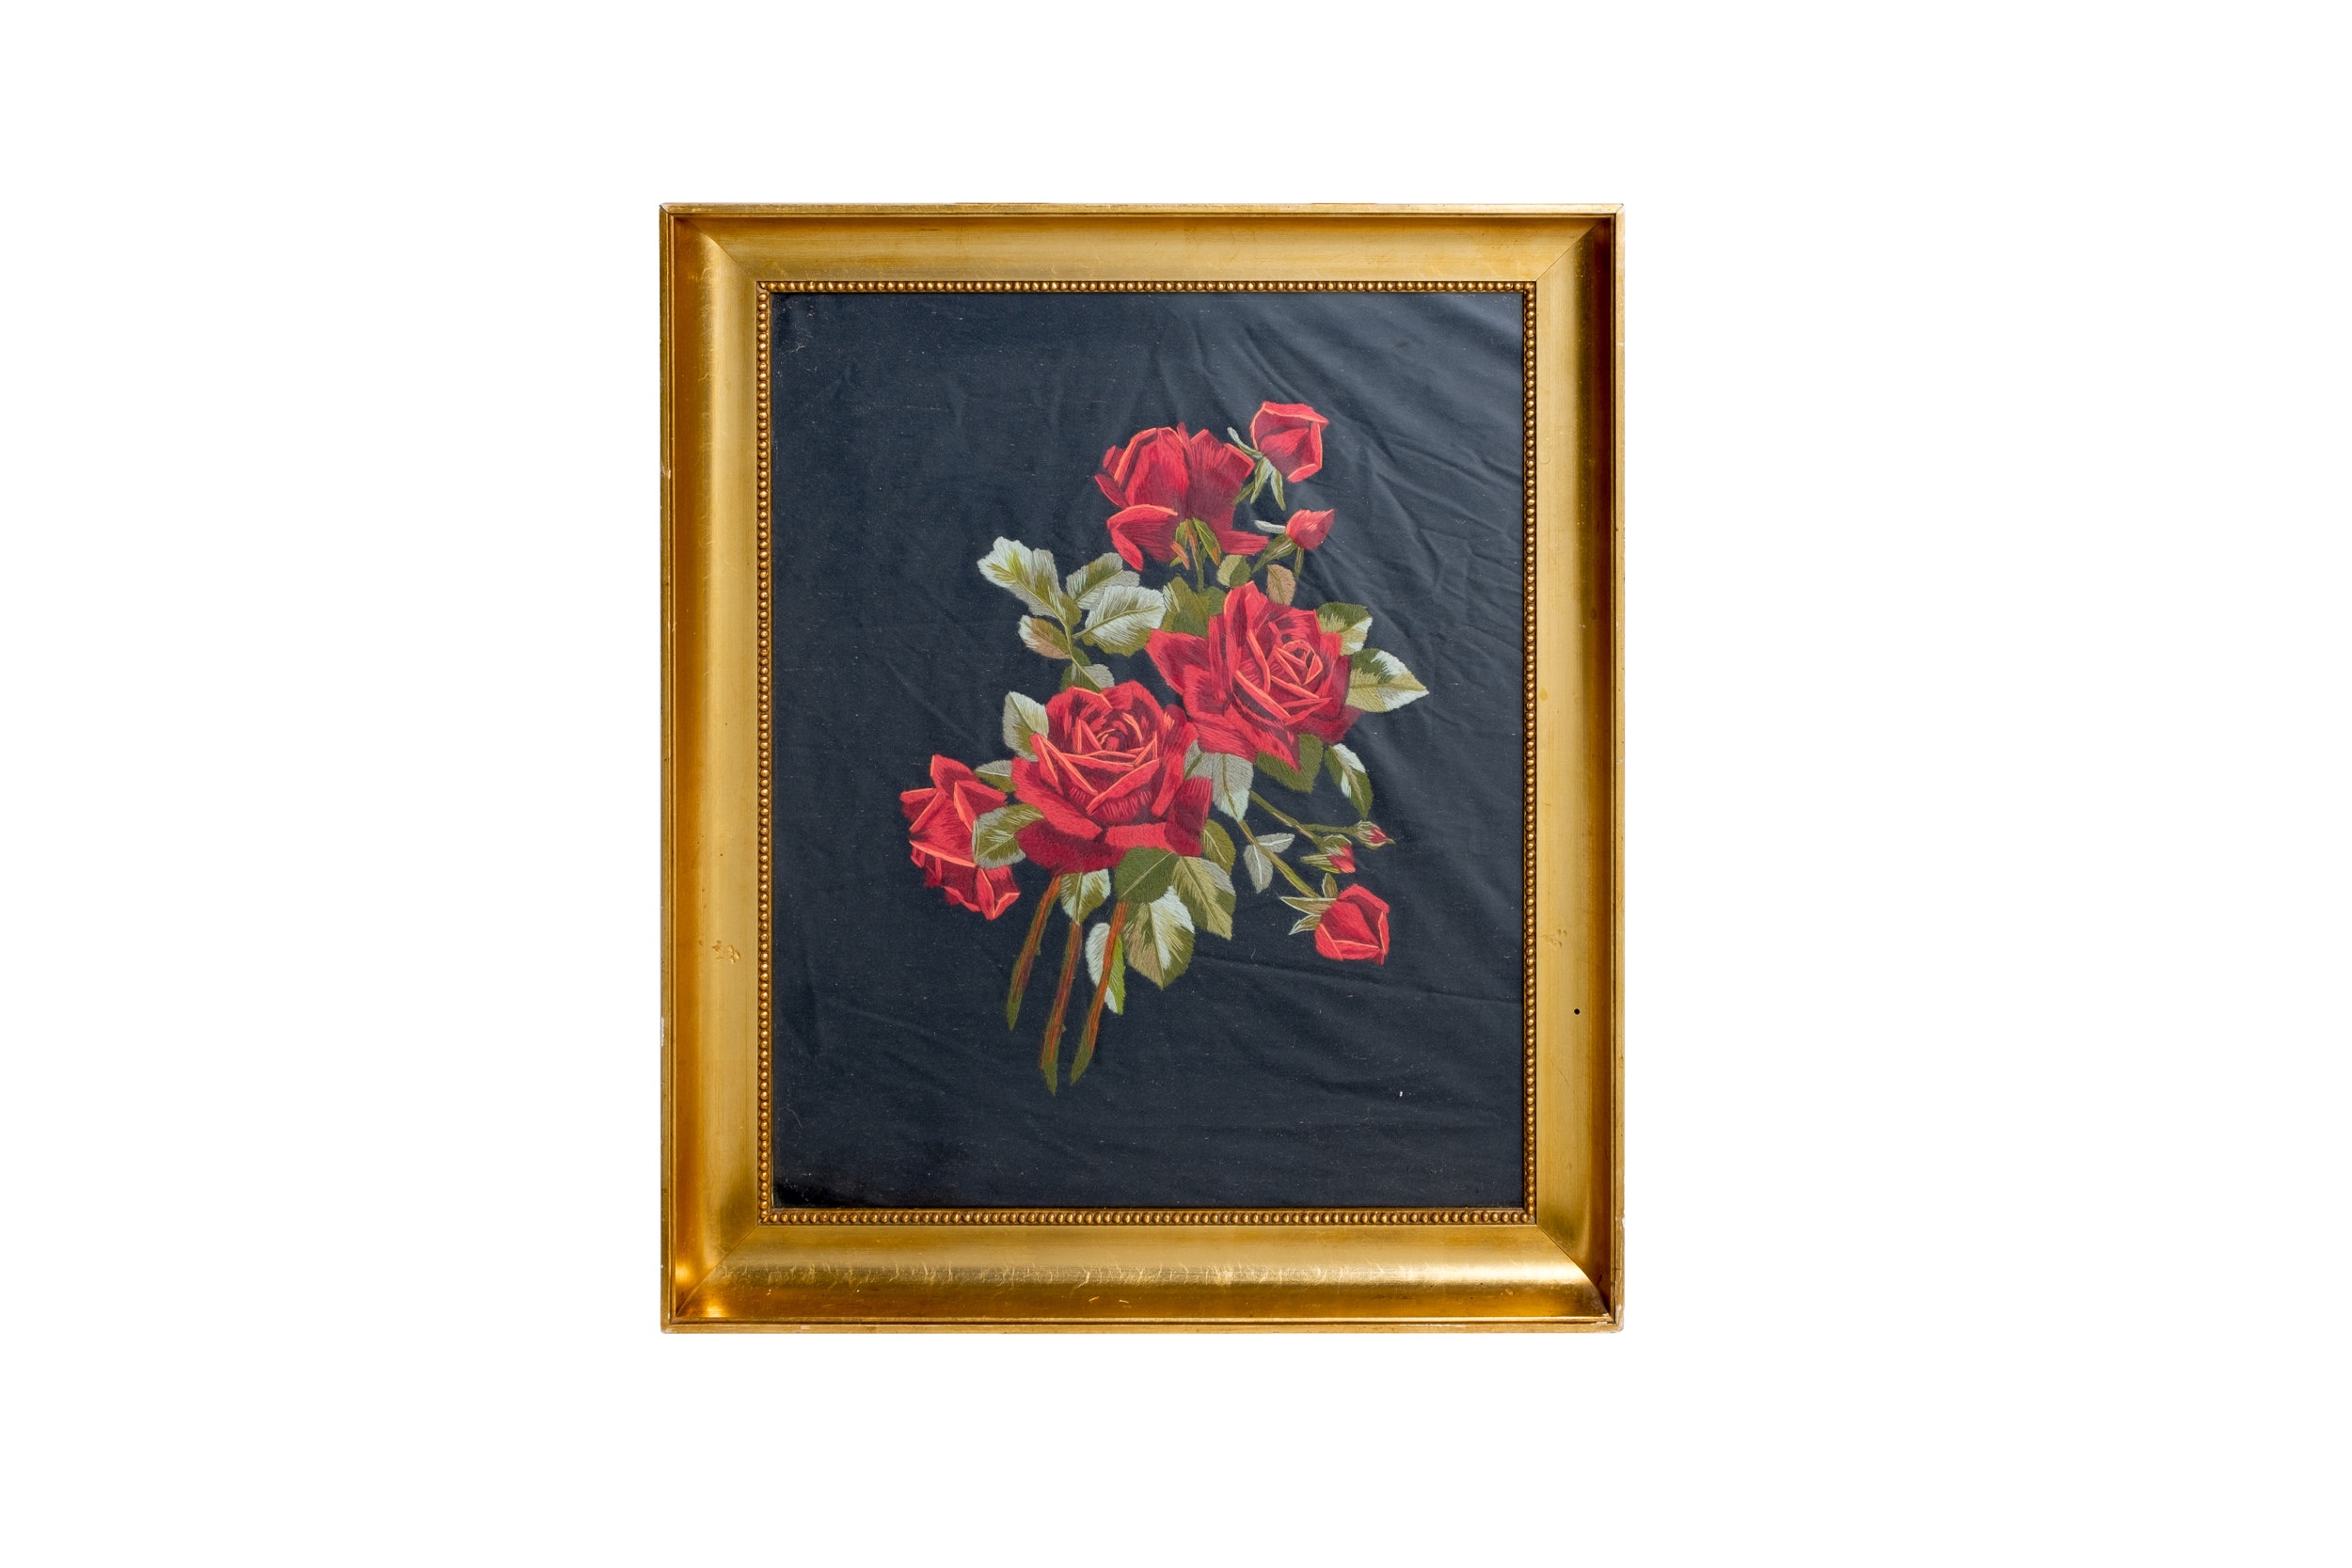 Embroidery of Roses